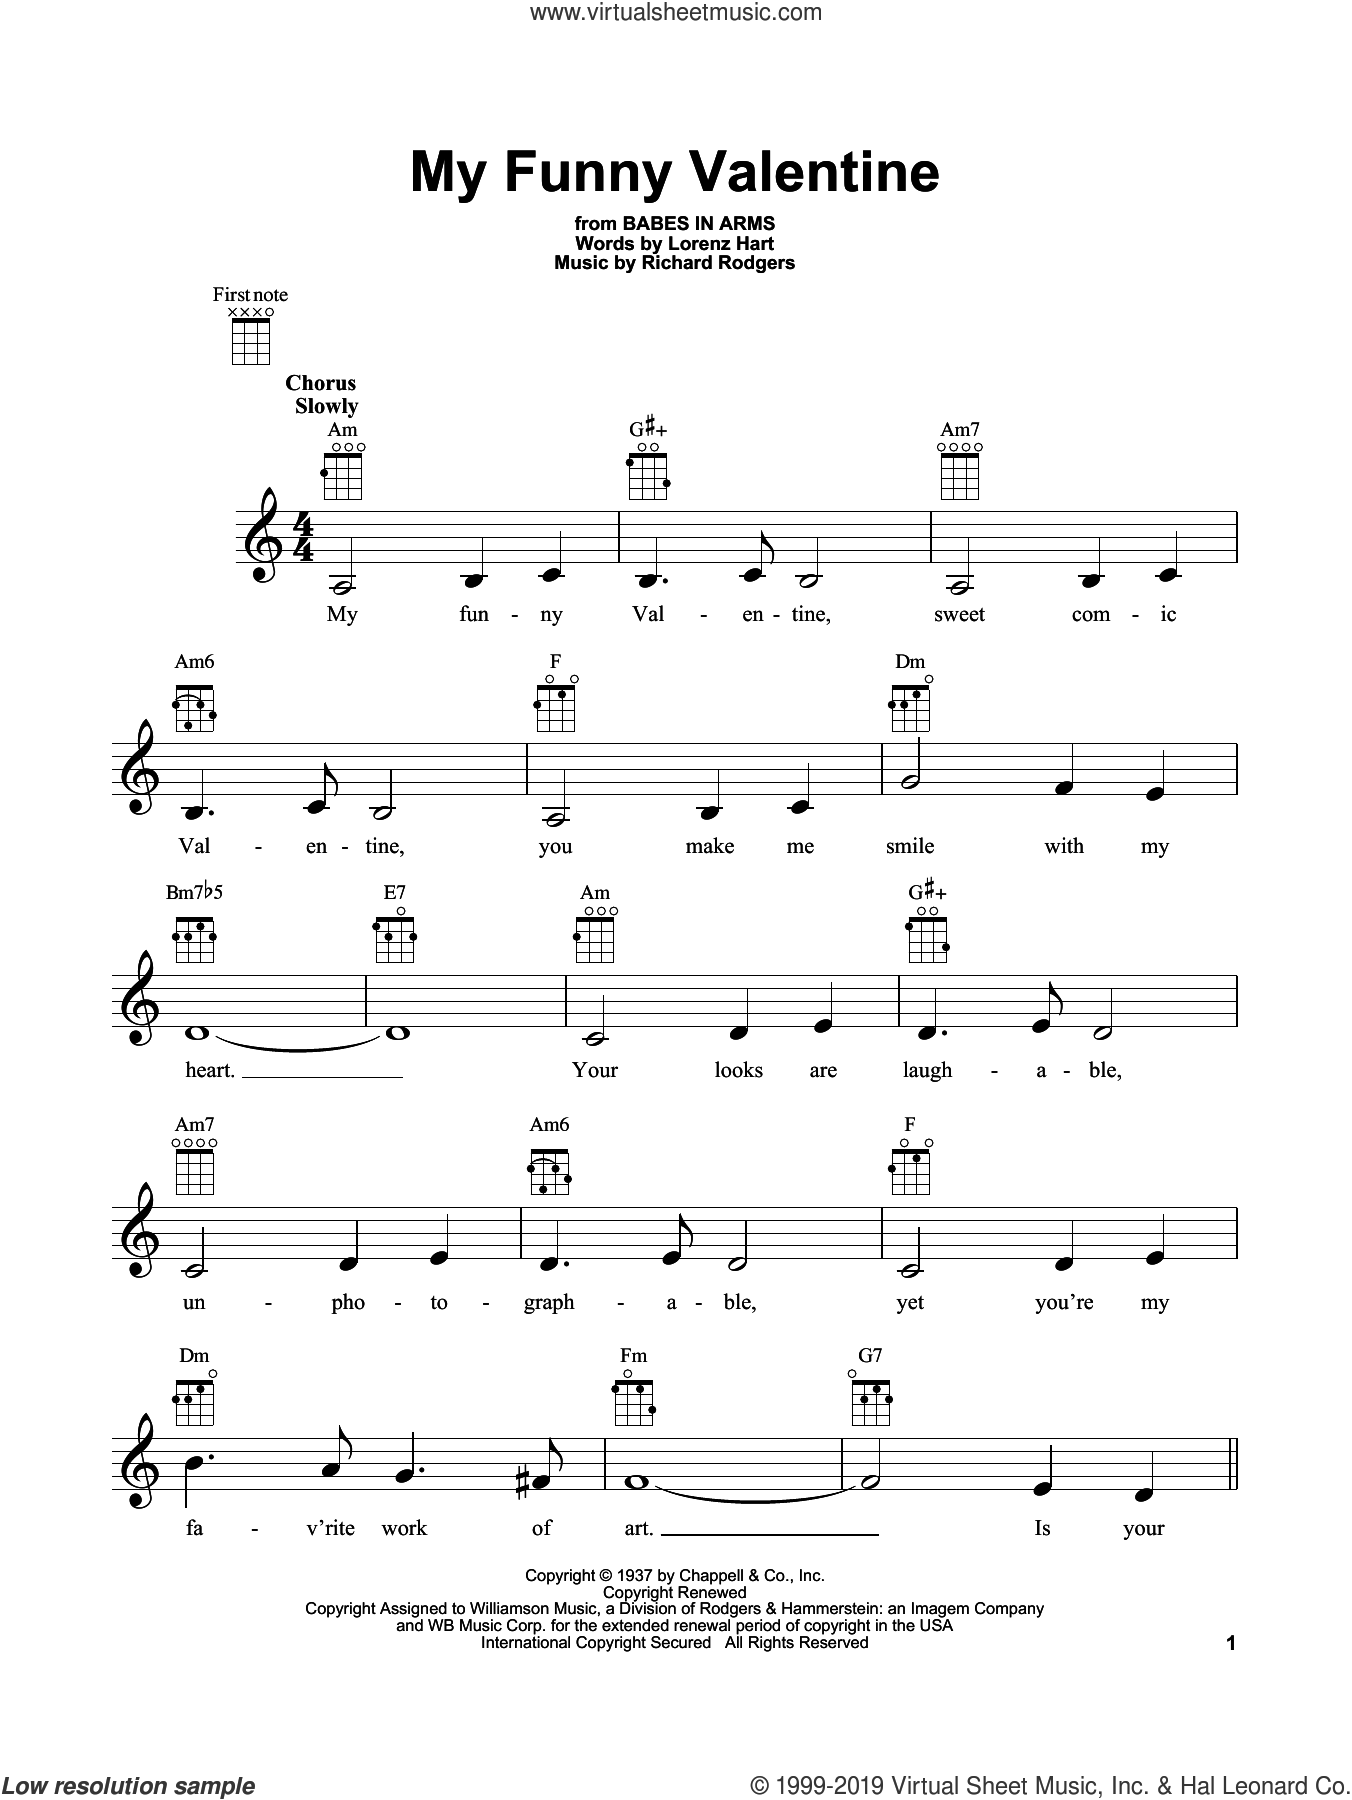 My Funny Valentine sheet music for ukulele by Rodgers & Hart, Lorenz Hart and Richard Rodgers, intermediate skill level